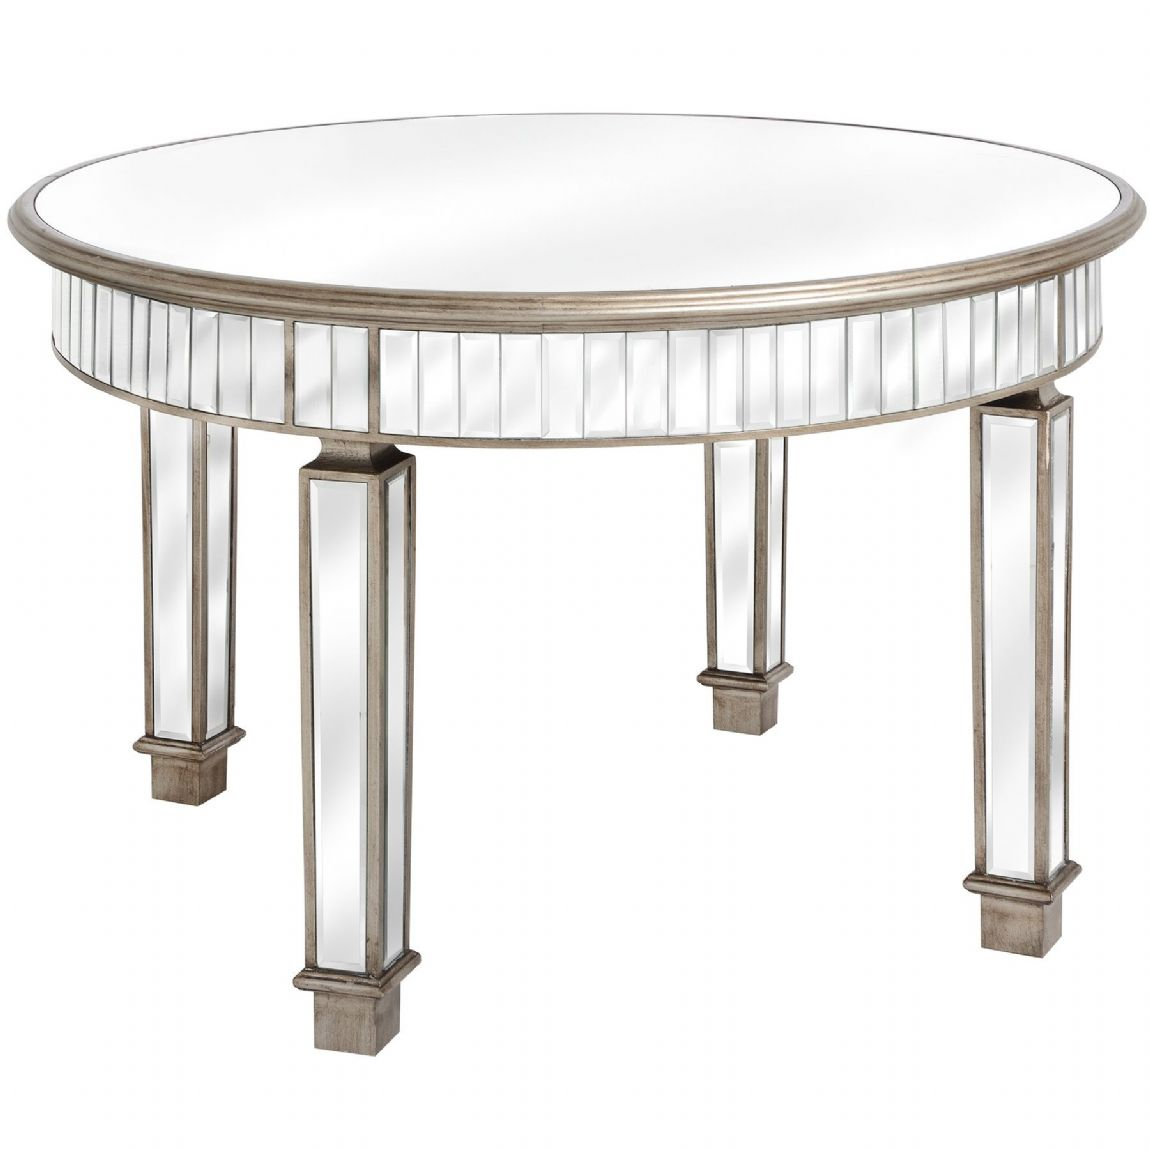 Carlyon Mirrored Circular Dining Table - Special Order